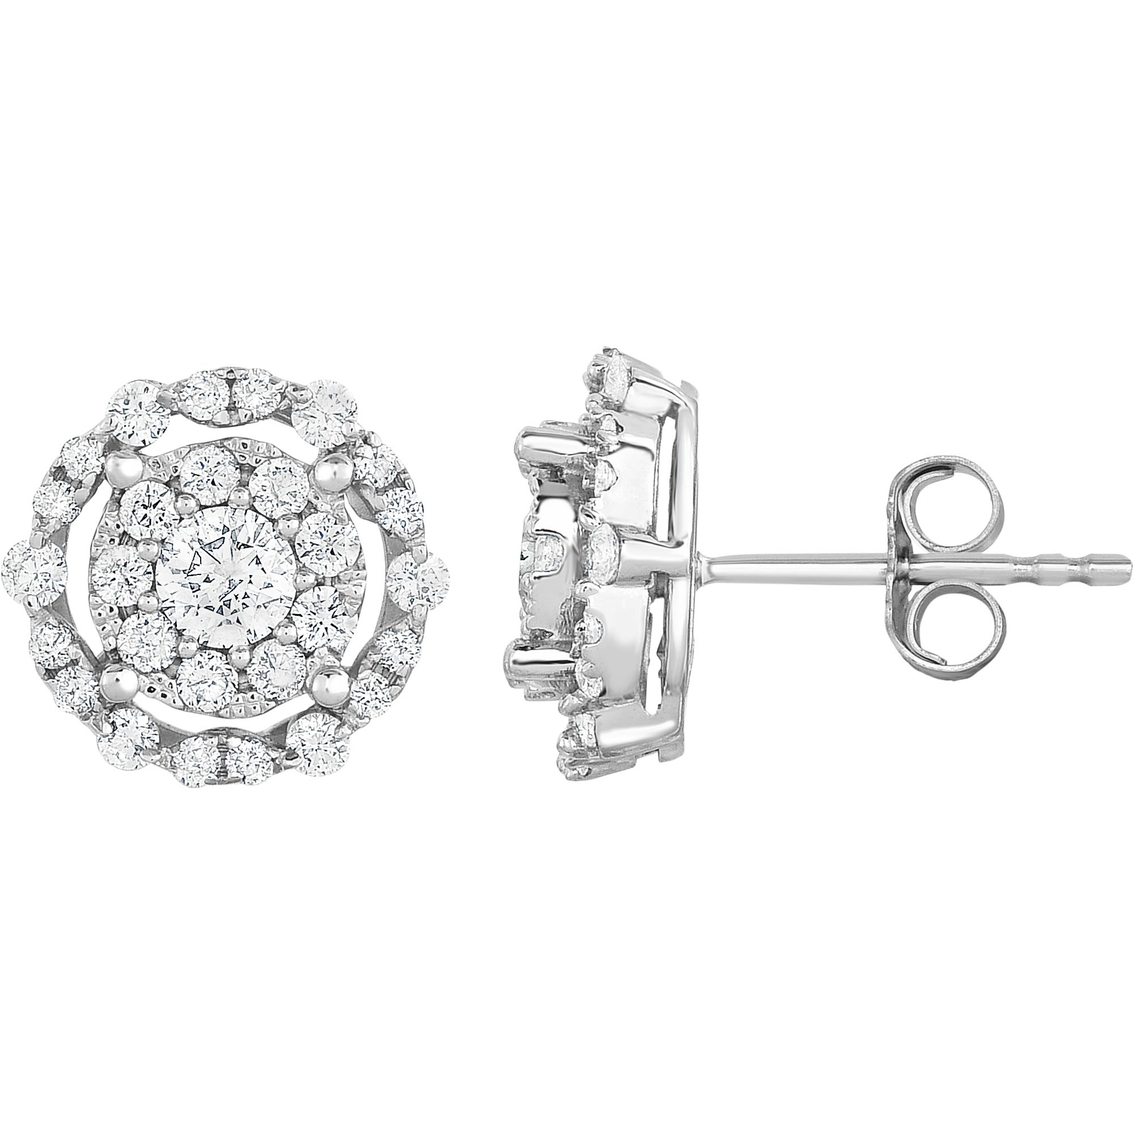 Adorne 10k White Gold 1 Ctw Diamond Classic Halo Stud